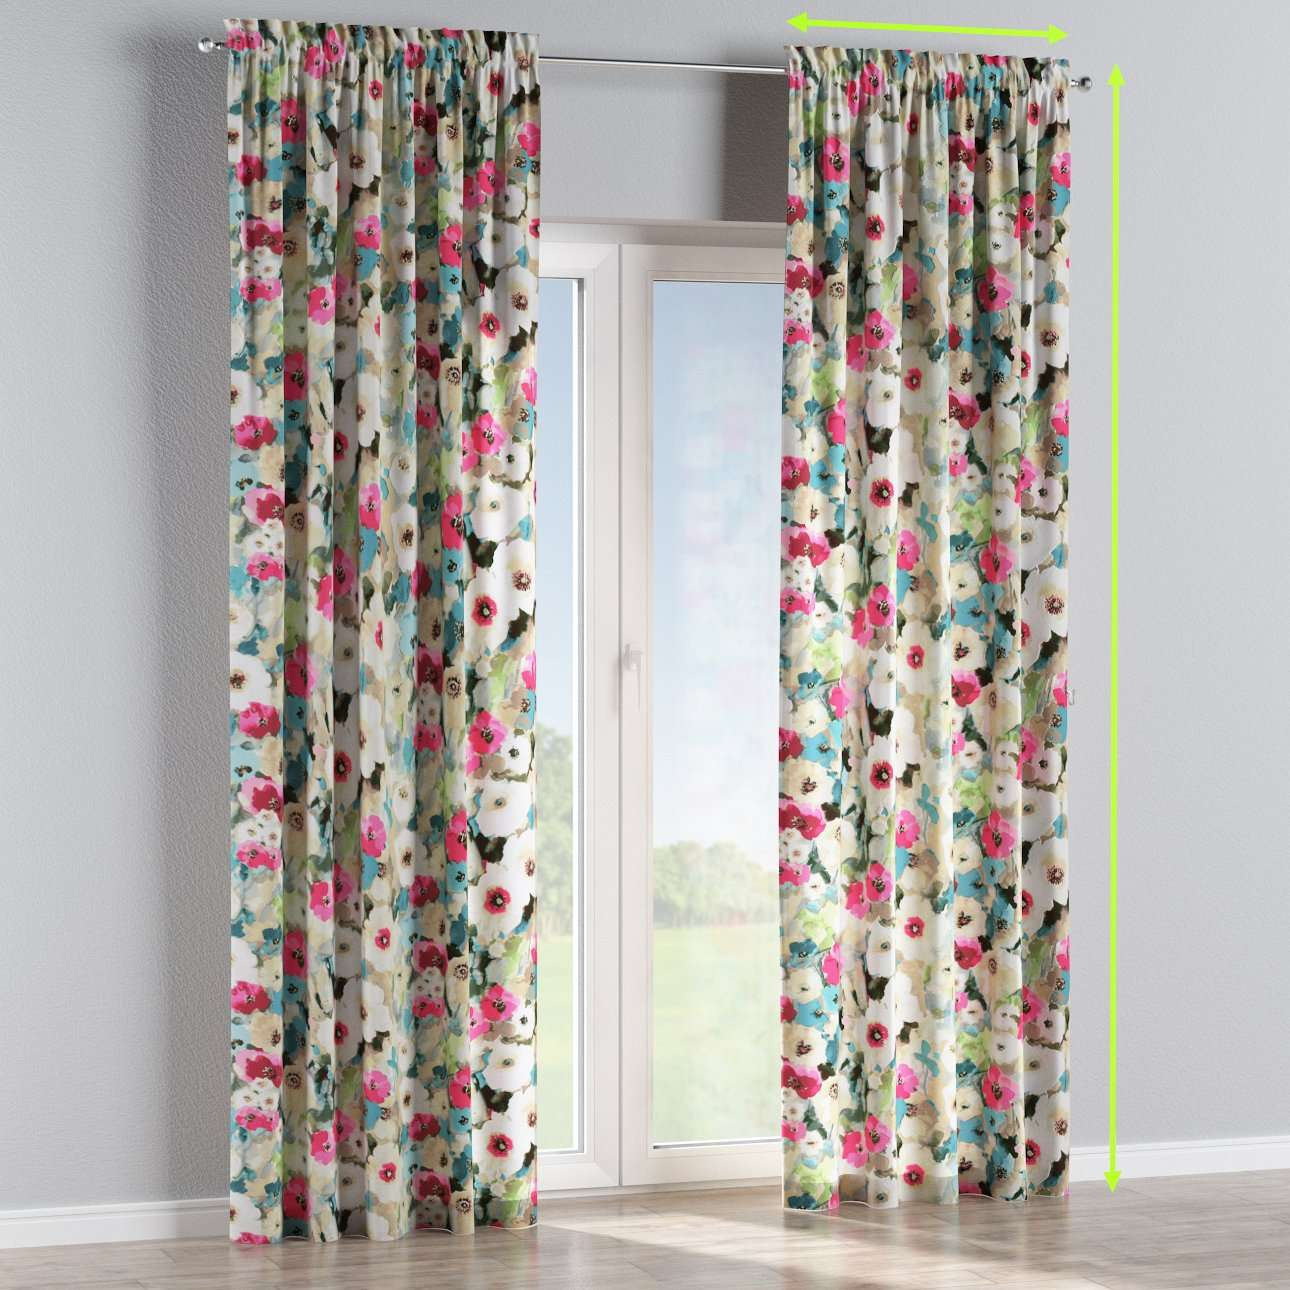 Slot and frill curtains in collection Monet, fabric: 140-08